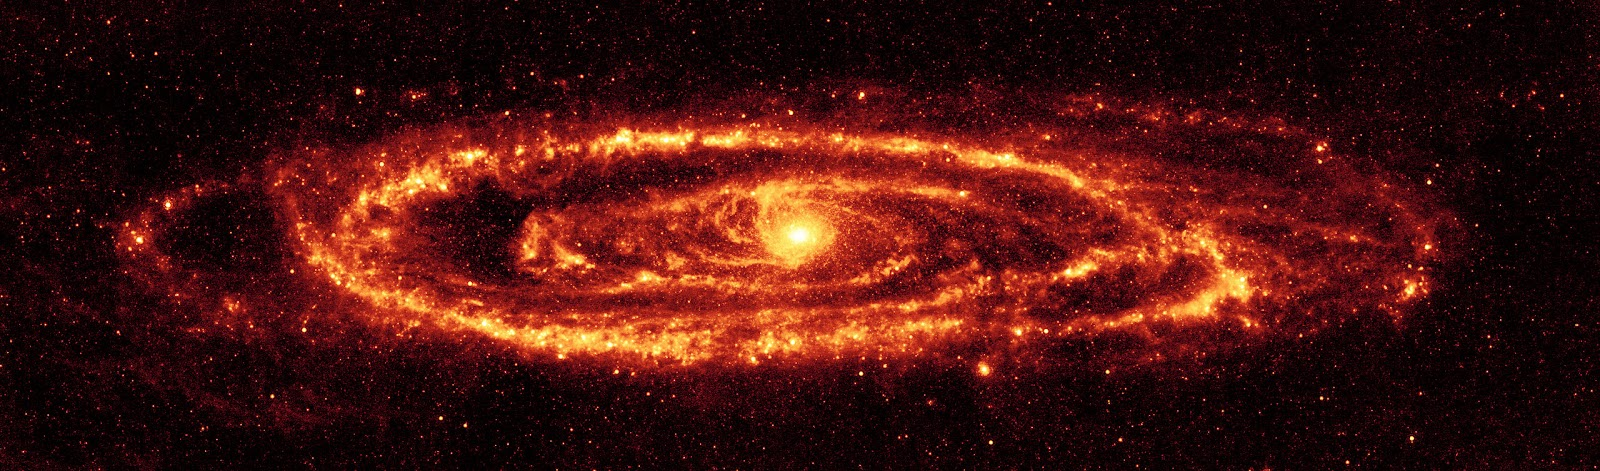 2560px-Andromeda_galaxy_Ssc2005-20a1.jpg